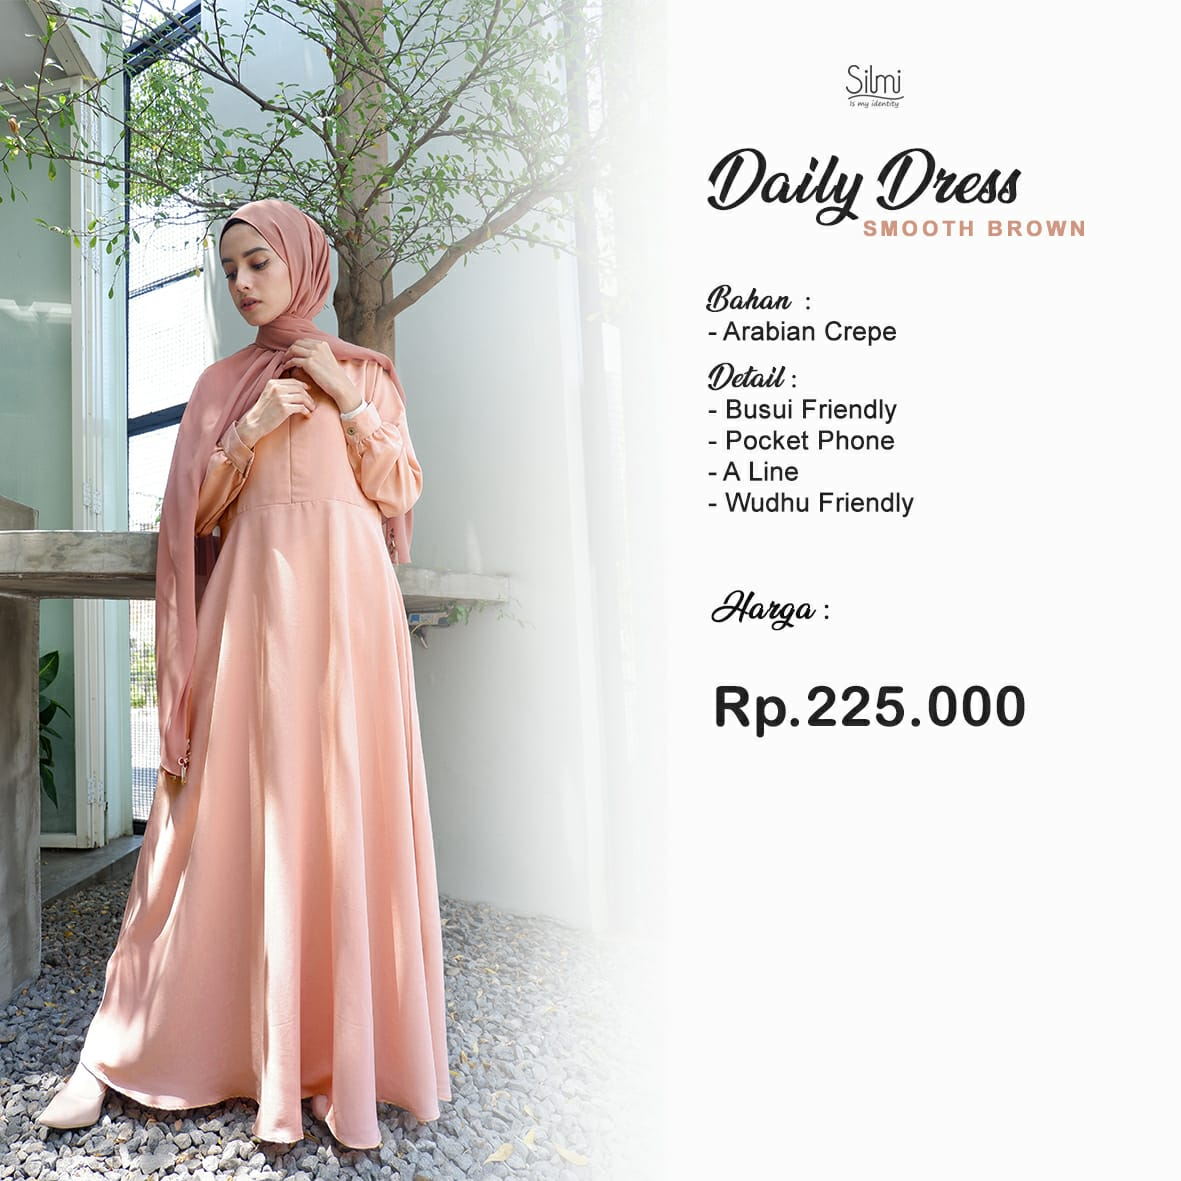 Silmi Daily Dress Arabian Crepe Smooth Brown